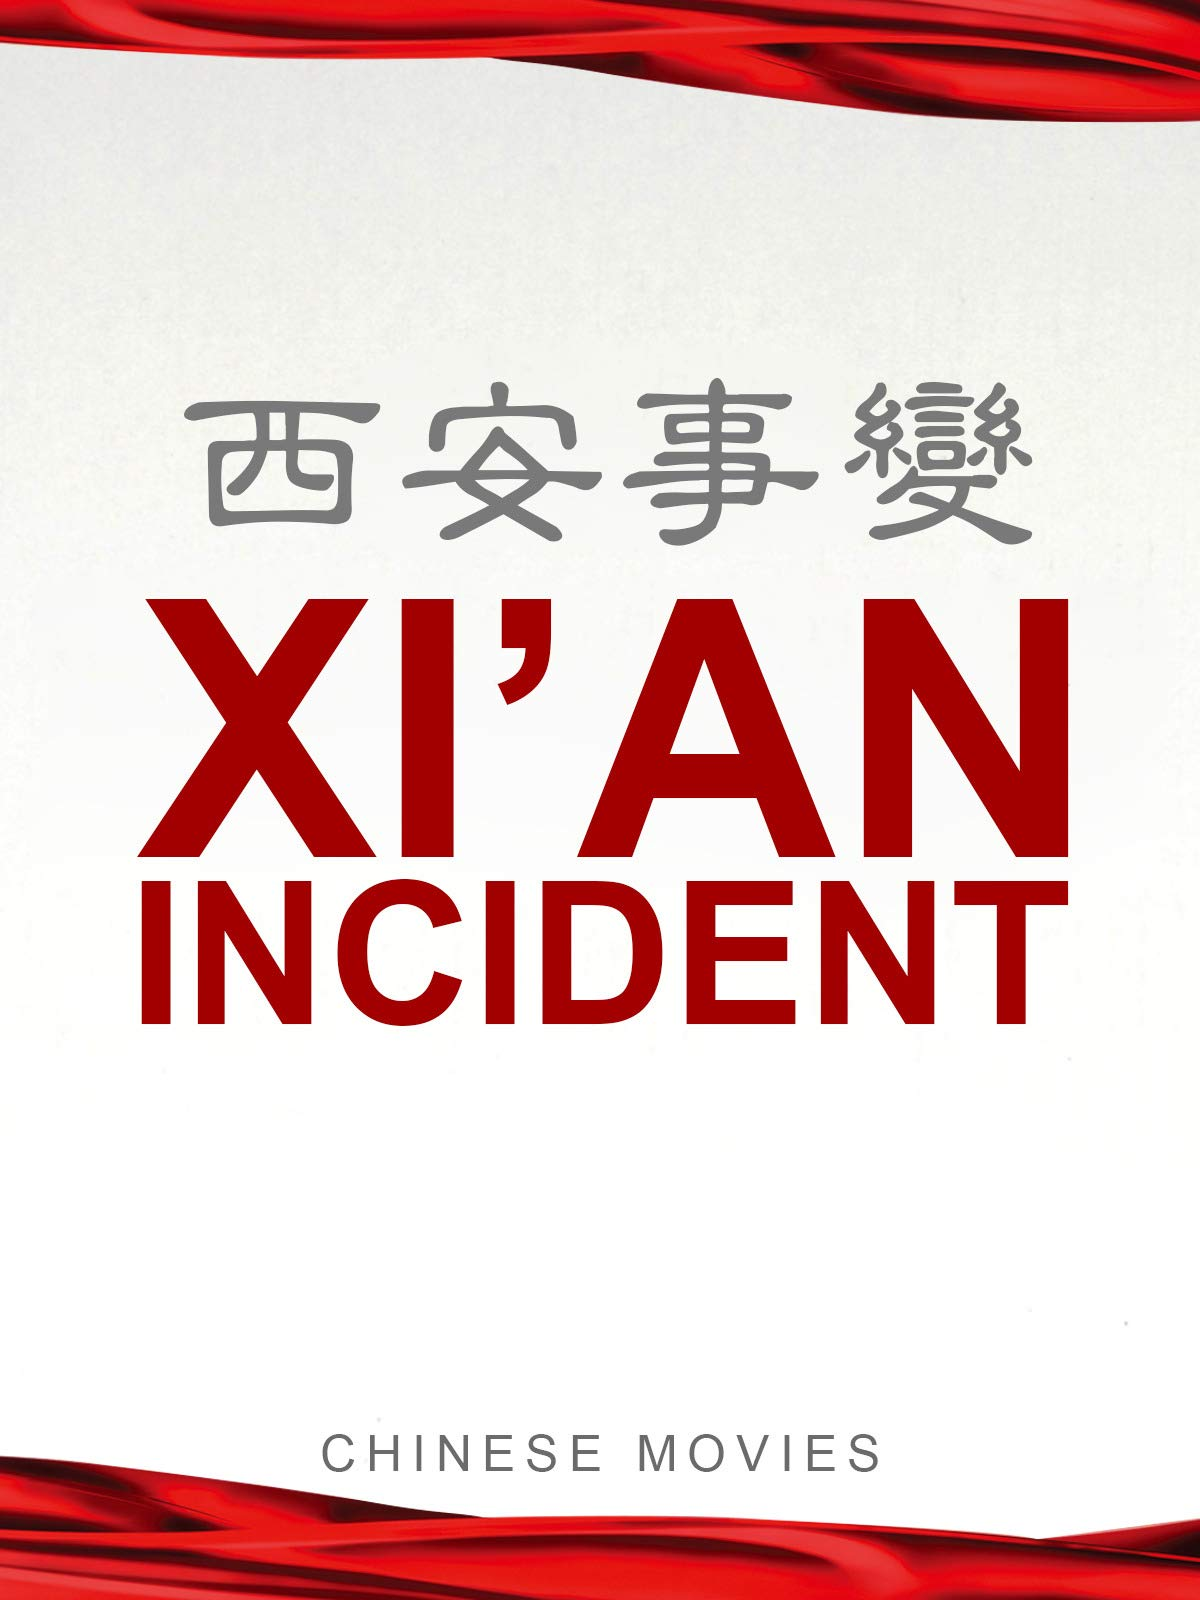 Chinese movies-Xi'an Incident-1